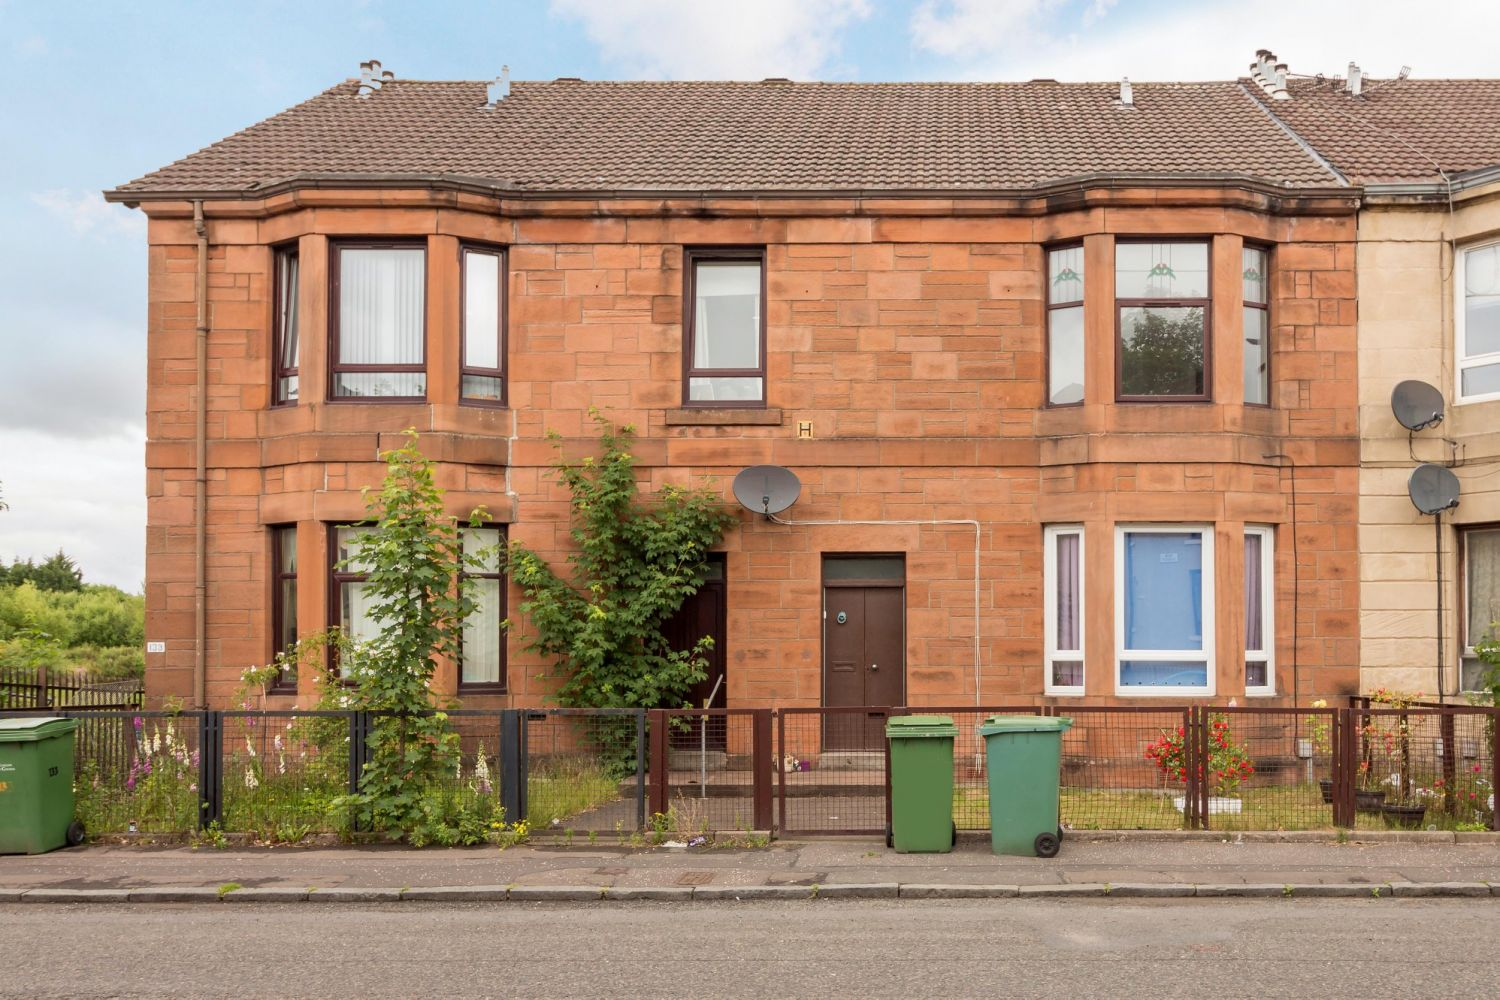 1/1 133 Old Shettleston Road, Glasgow